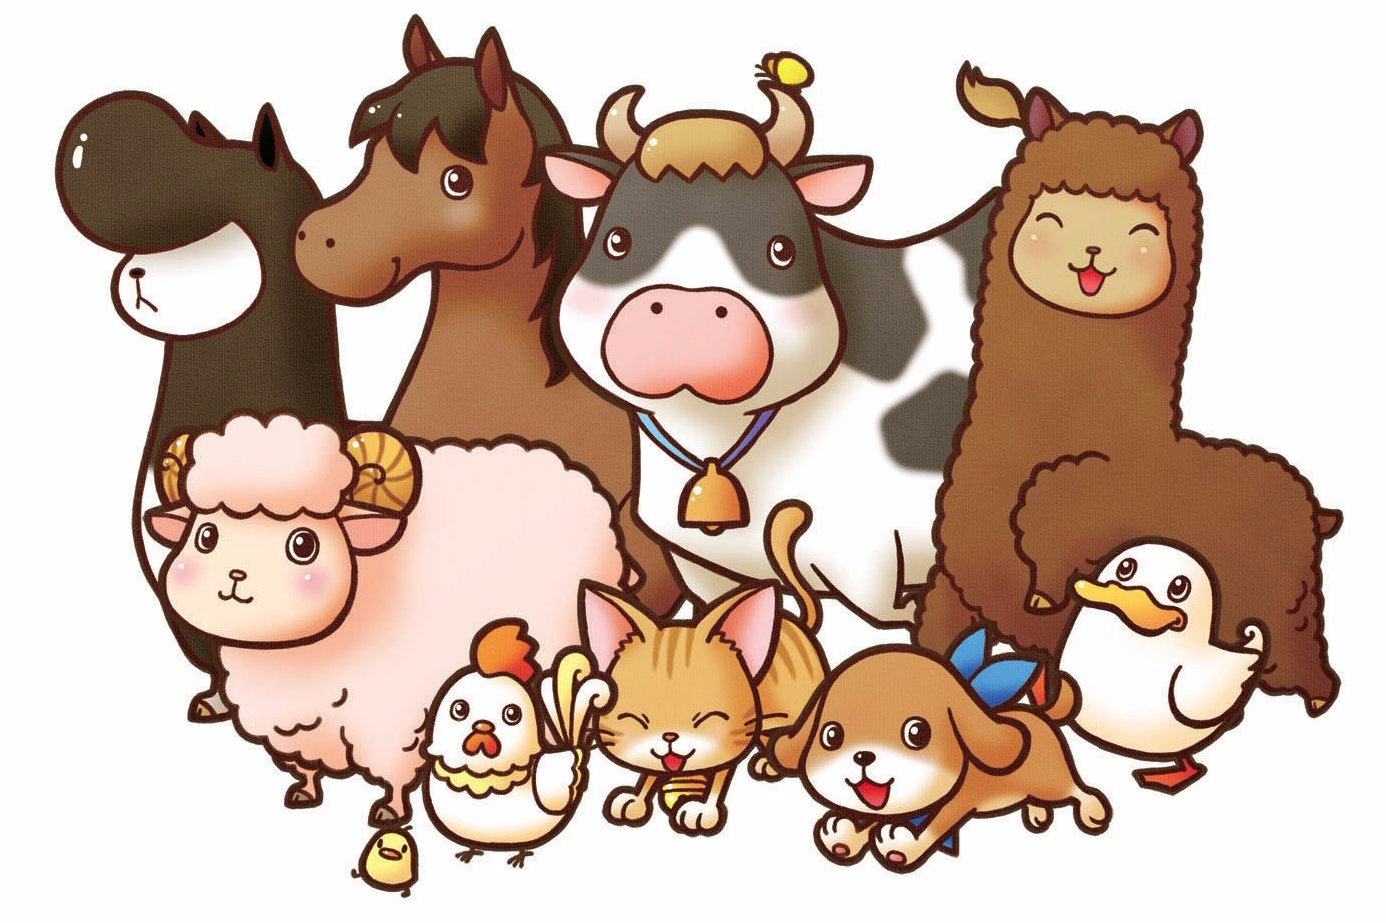 Modojo   This Week's Nintendo Download Games - Adorable Harvest Moon Animals Included!